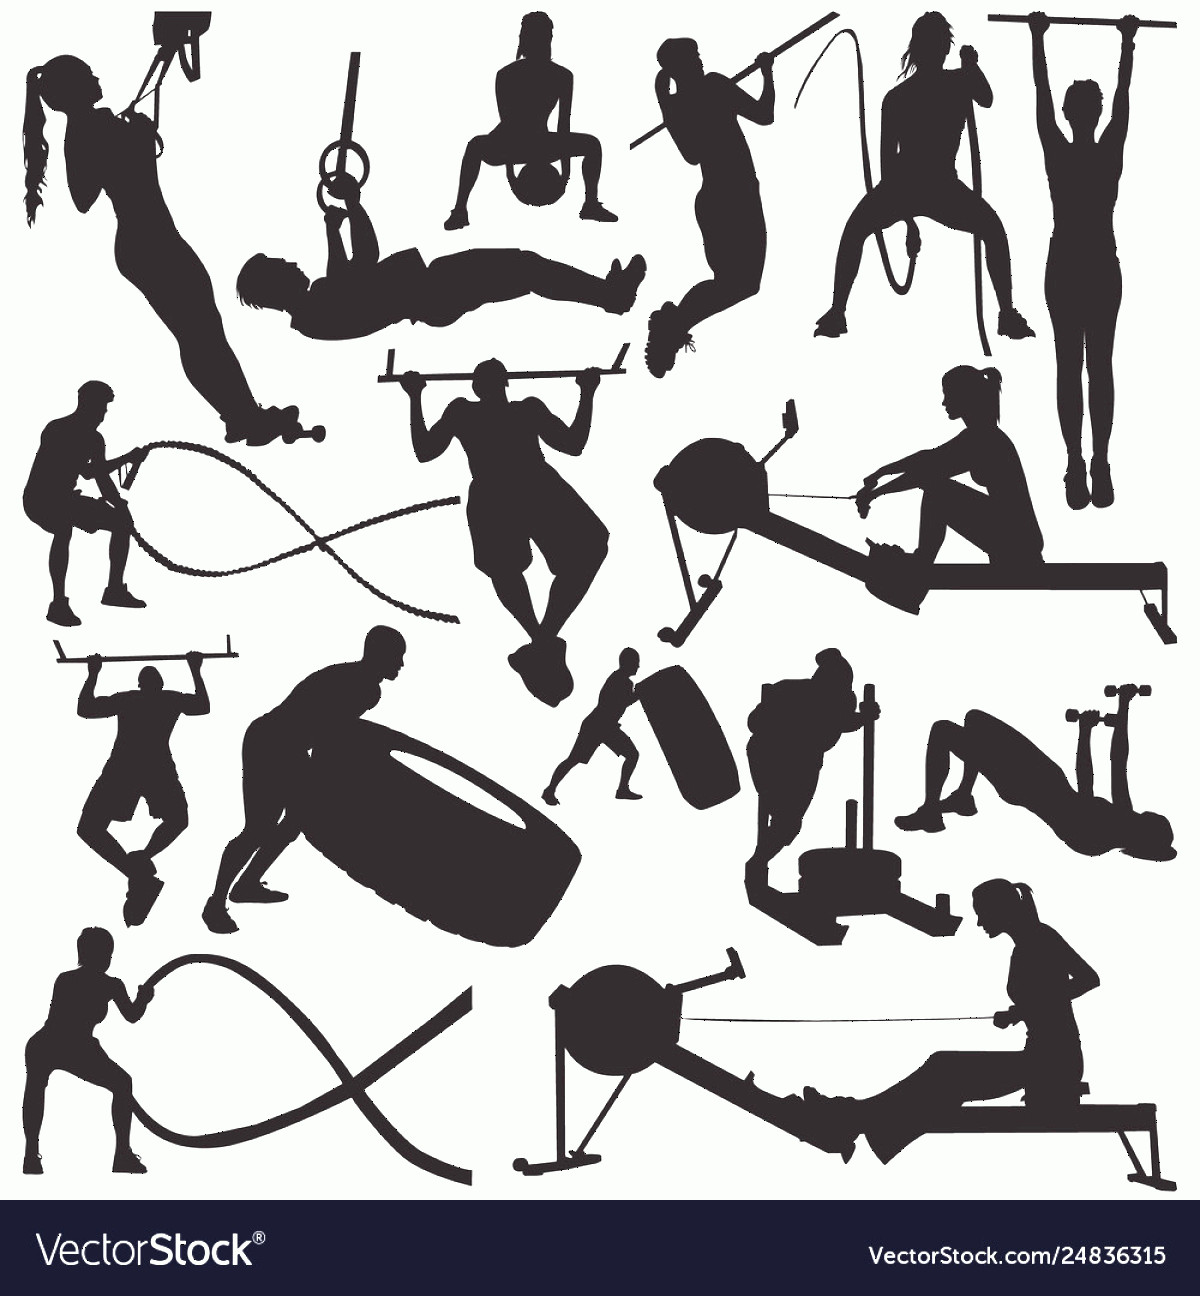 Vector Gym Equipment: Fitness Gym Equipment Silhouettes Vector